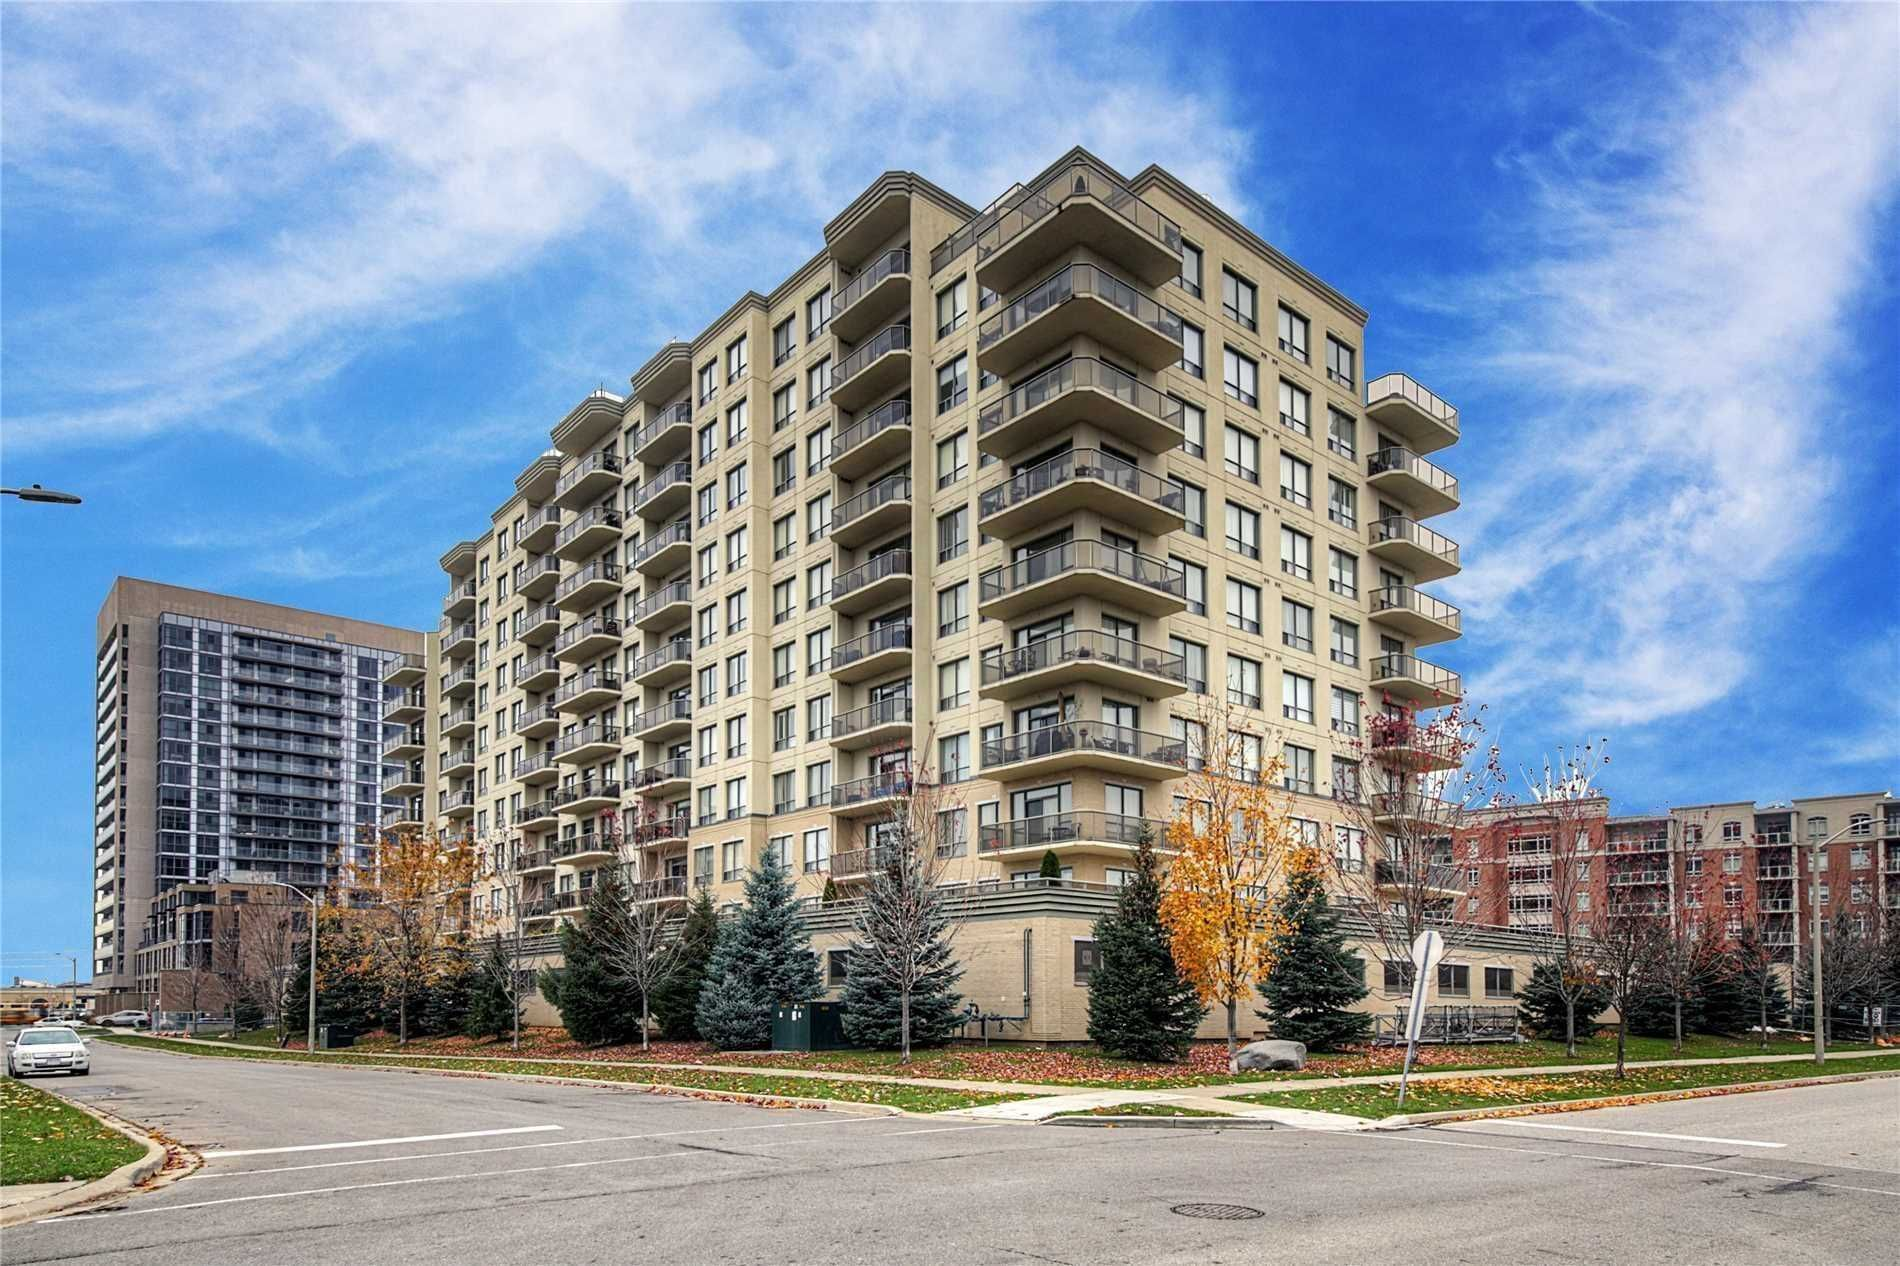 1998 Ironstone Dr. This condo at Millcroft Place Condos is located in Orchard, Burlington